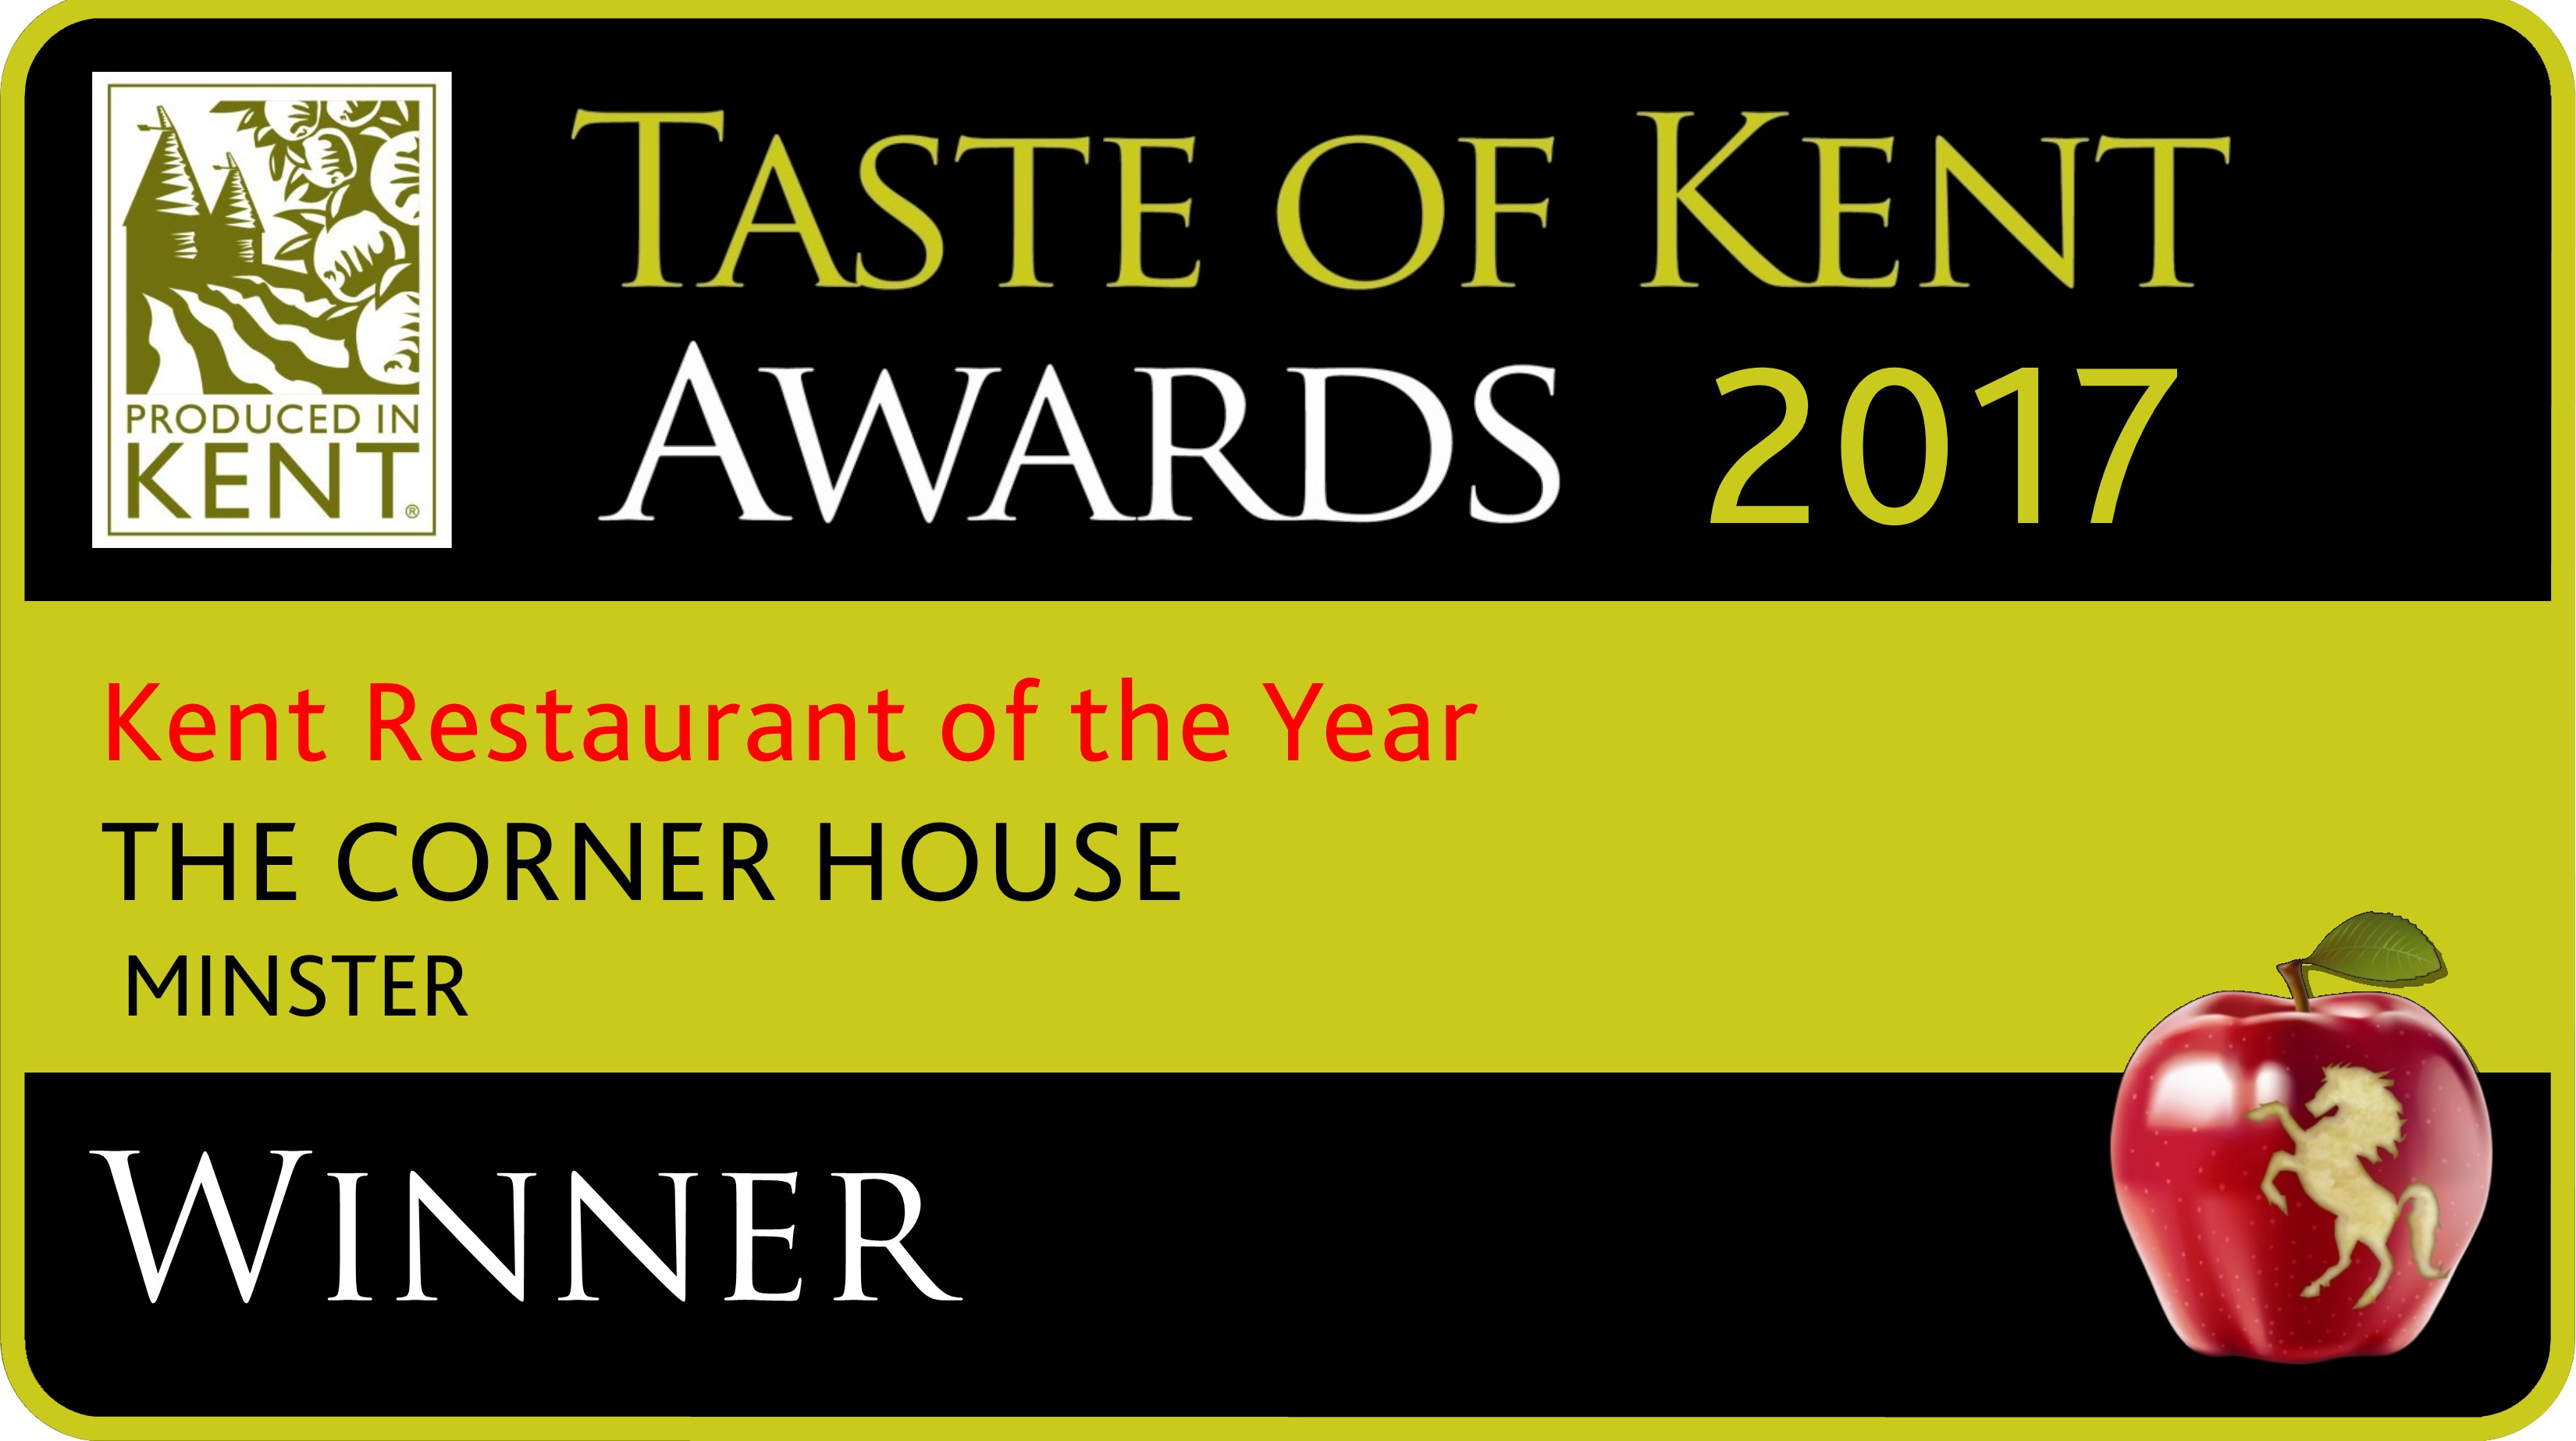 Taste of Kent Awards - Top 3